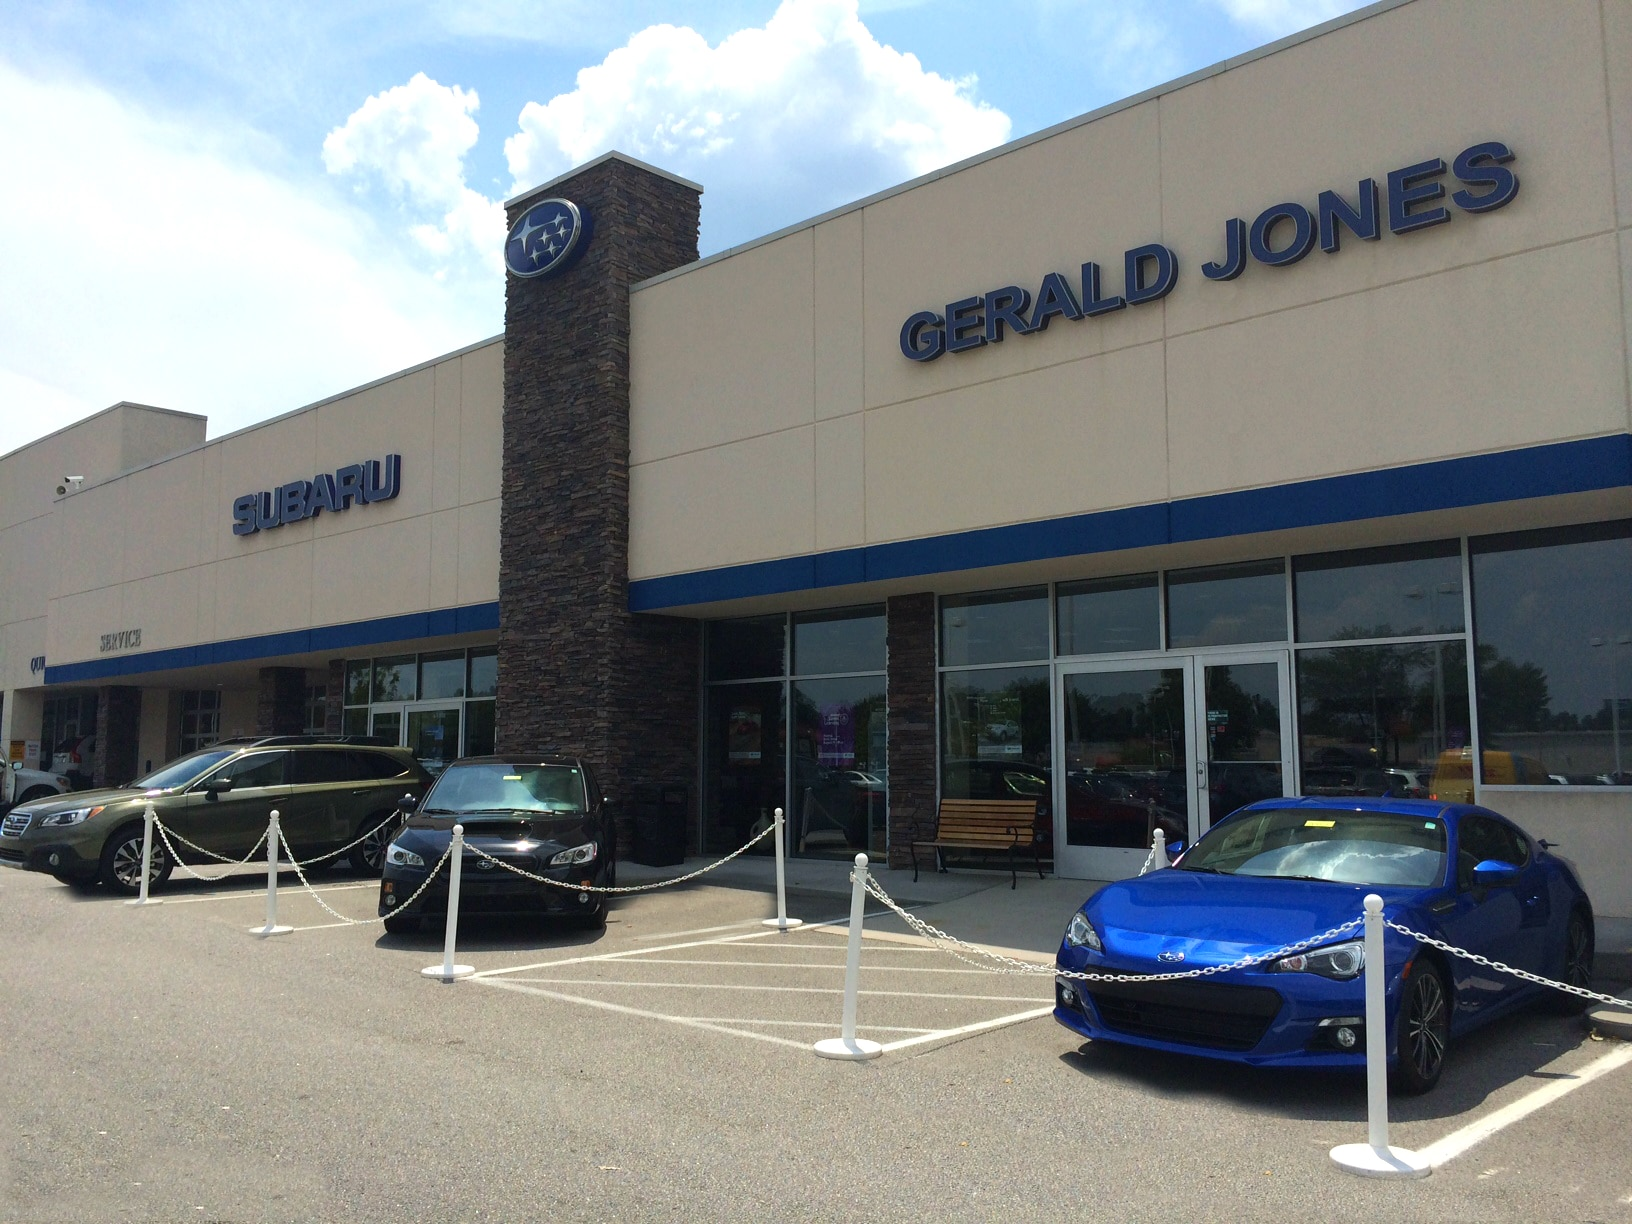 Gerald Jones Subaru New Used Subaru Dealer Serving Autos